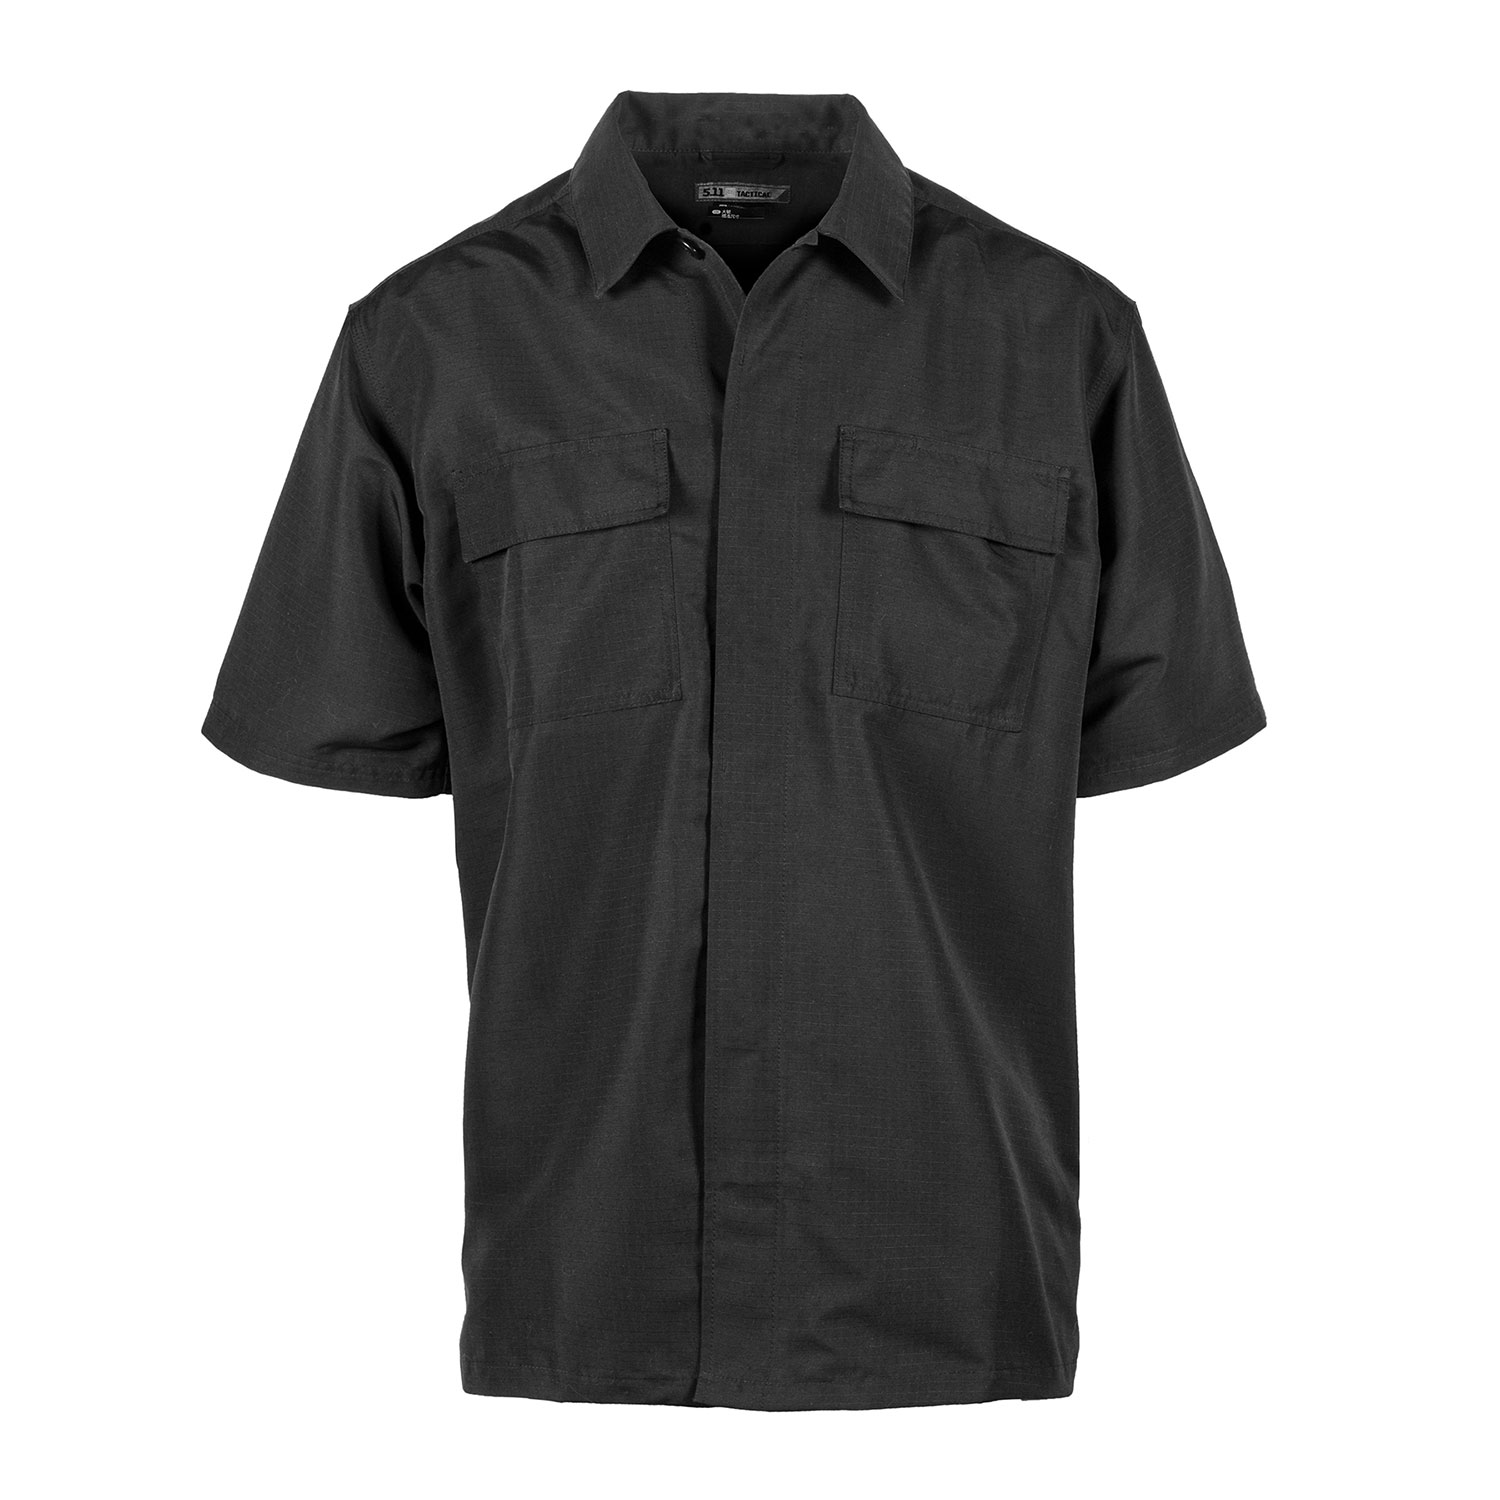 5.11 Fast-Tac TDU Rapid Shirt Short Sleeve